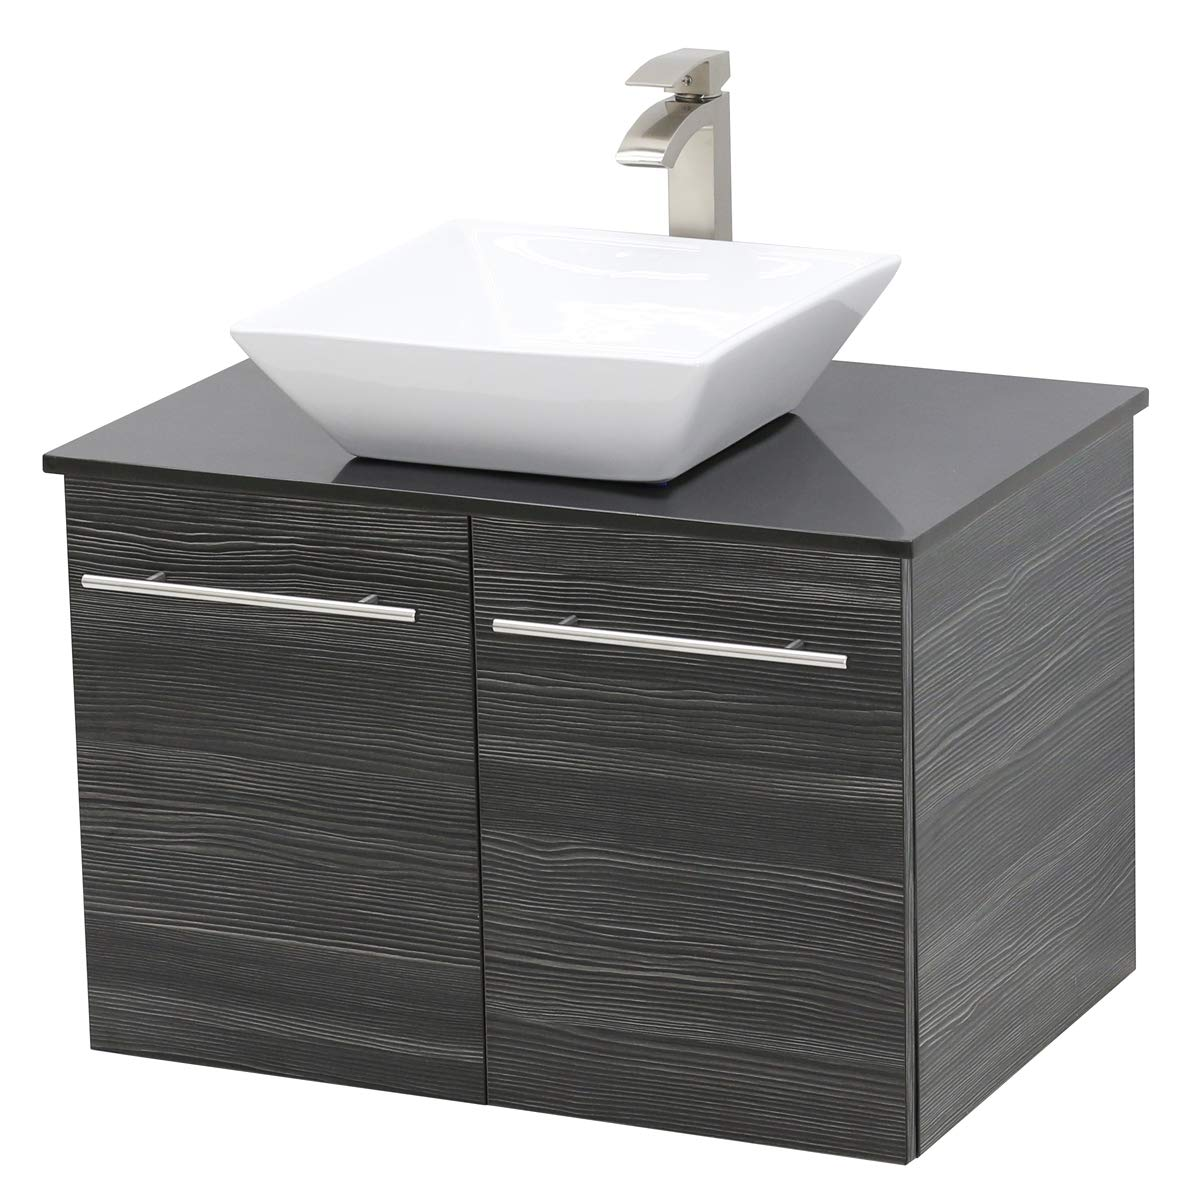 WindBay Wall Mount Floating Bathroom Vanity Sink Set. Dark Grey Vanity, Black Flat Stone Countertop Ceramic Sink – 24